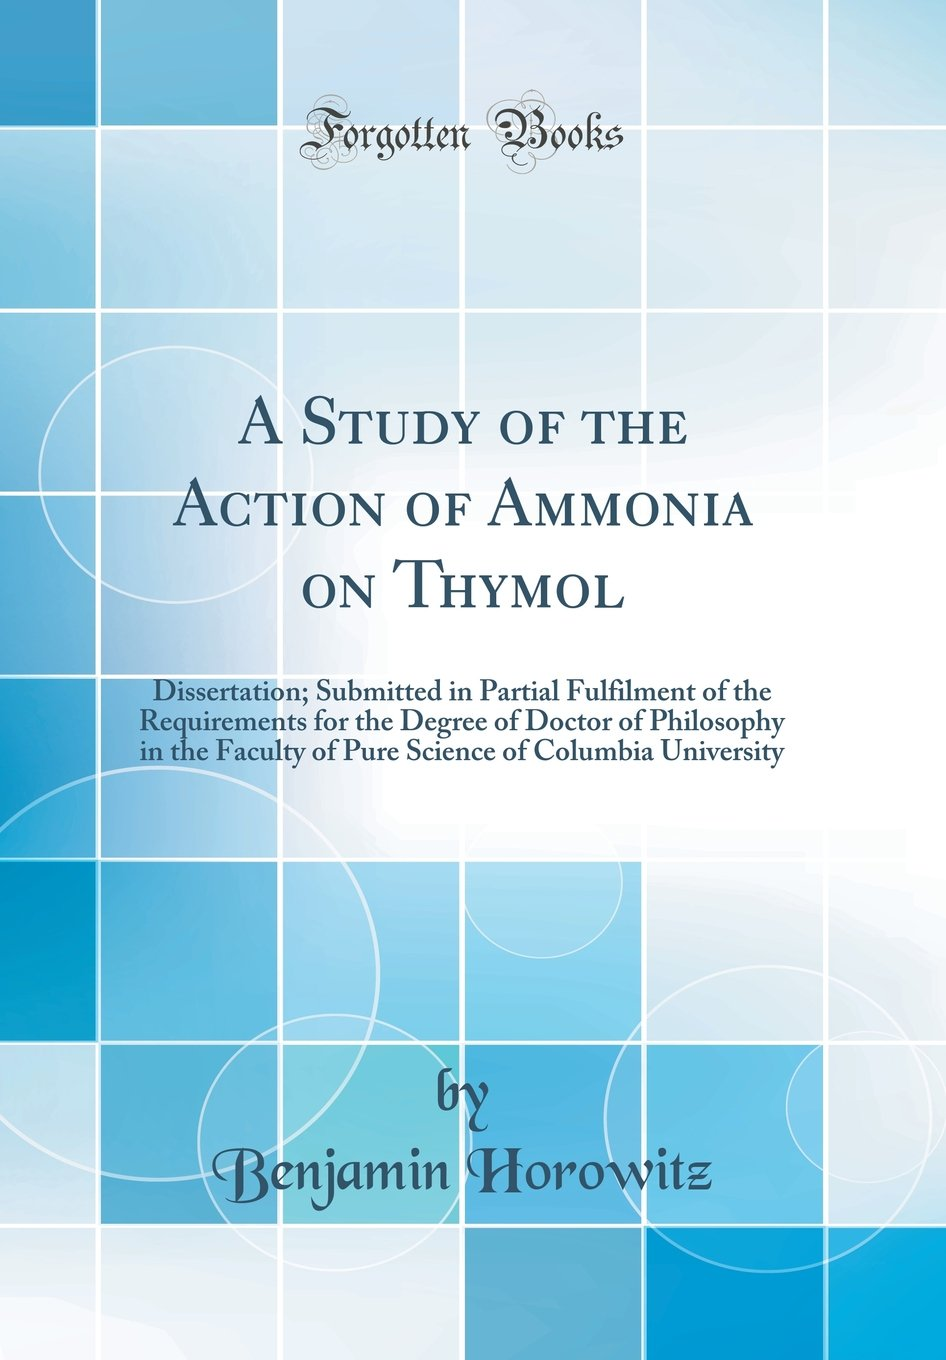 Download A Study of the Action of Ammonia on Thymol: Dissertation; Submitted in Partial Fulfilment of the Requirements for the Degree of Doctor of Philosophy ... of Columbia University (Classic Reprint) ebook